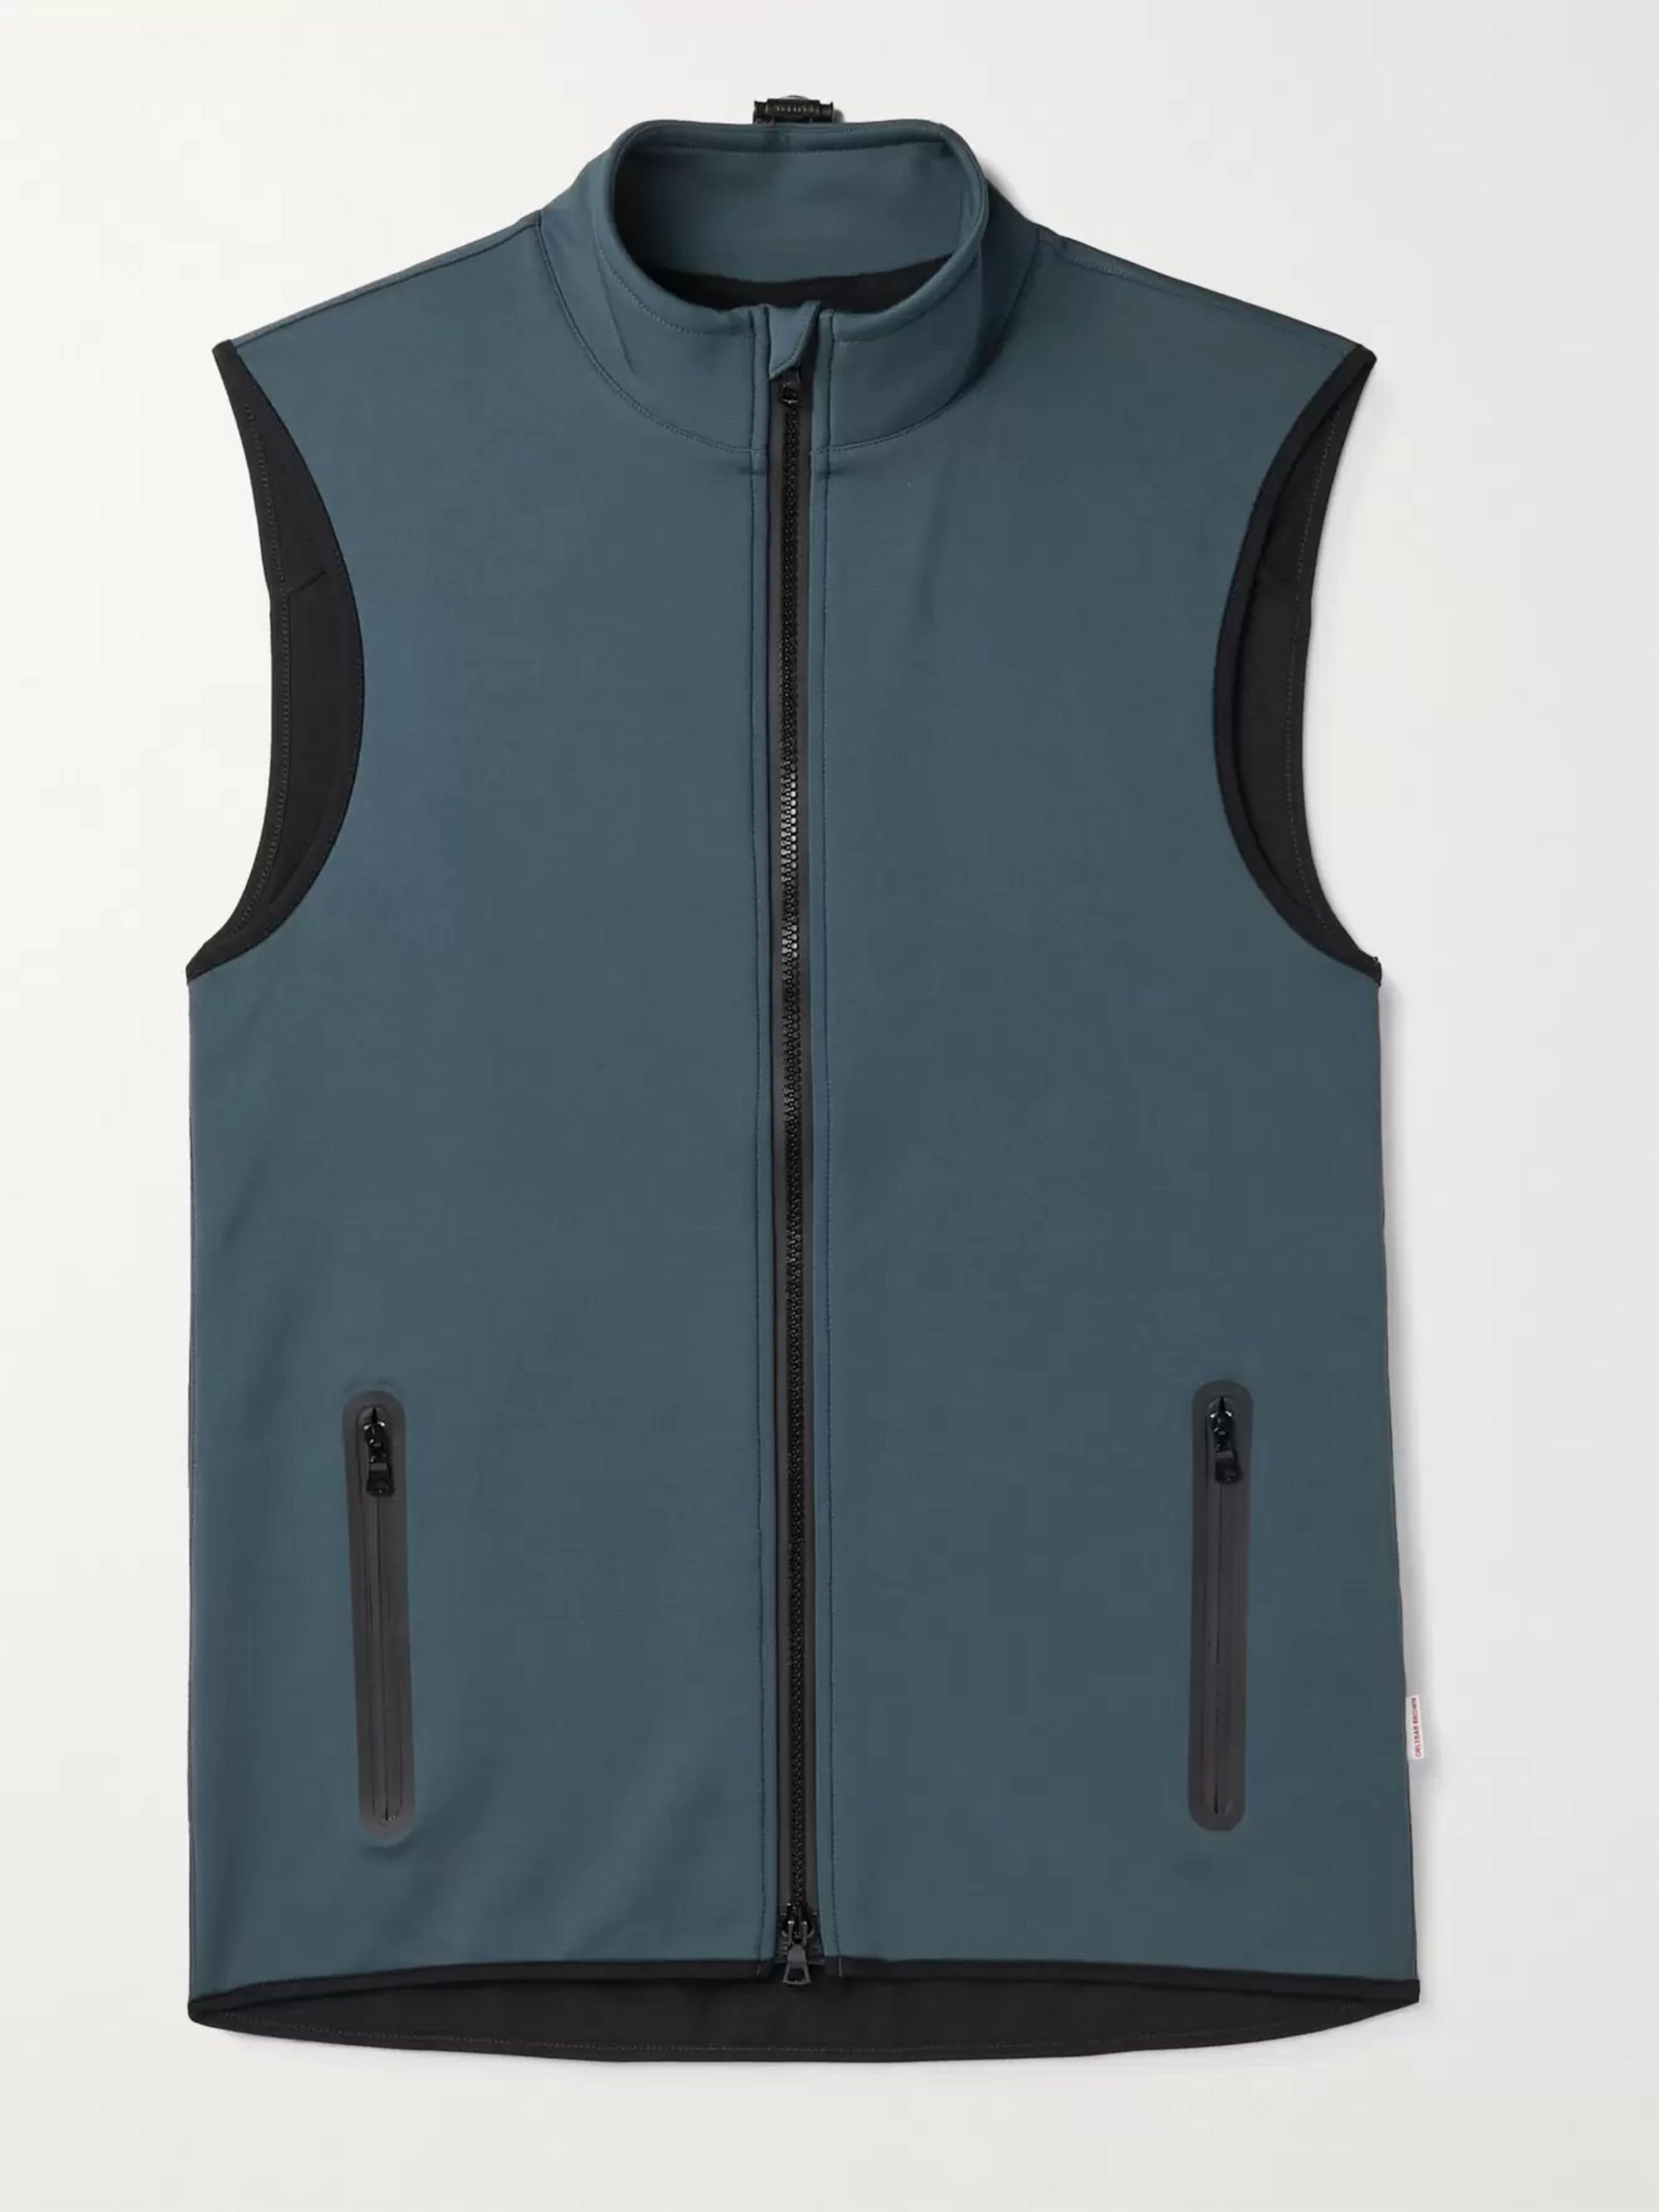 ORLEBAR BROWN Shark Capsule Whitman Tech-Jersey Gilet